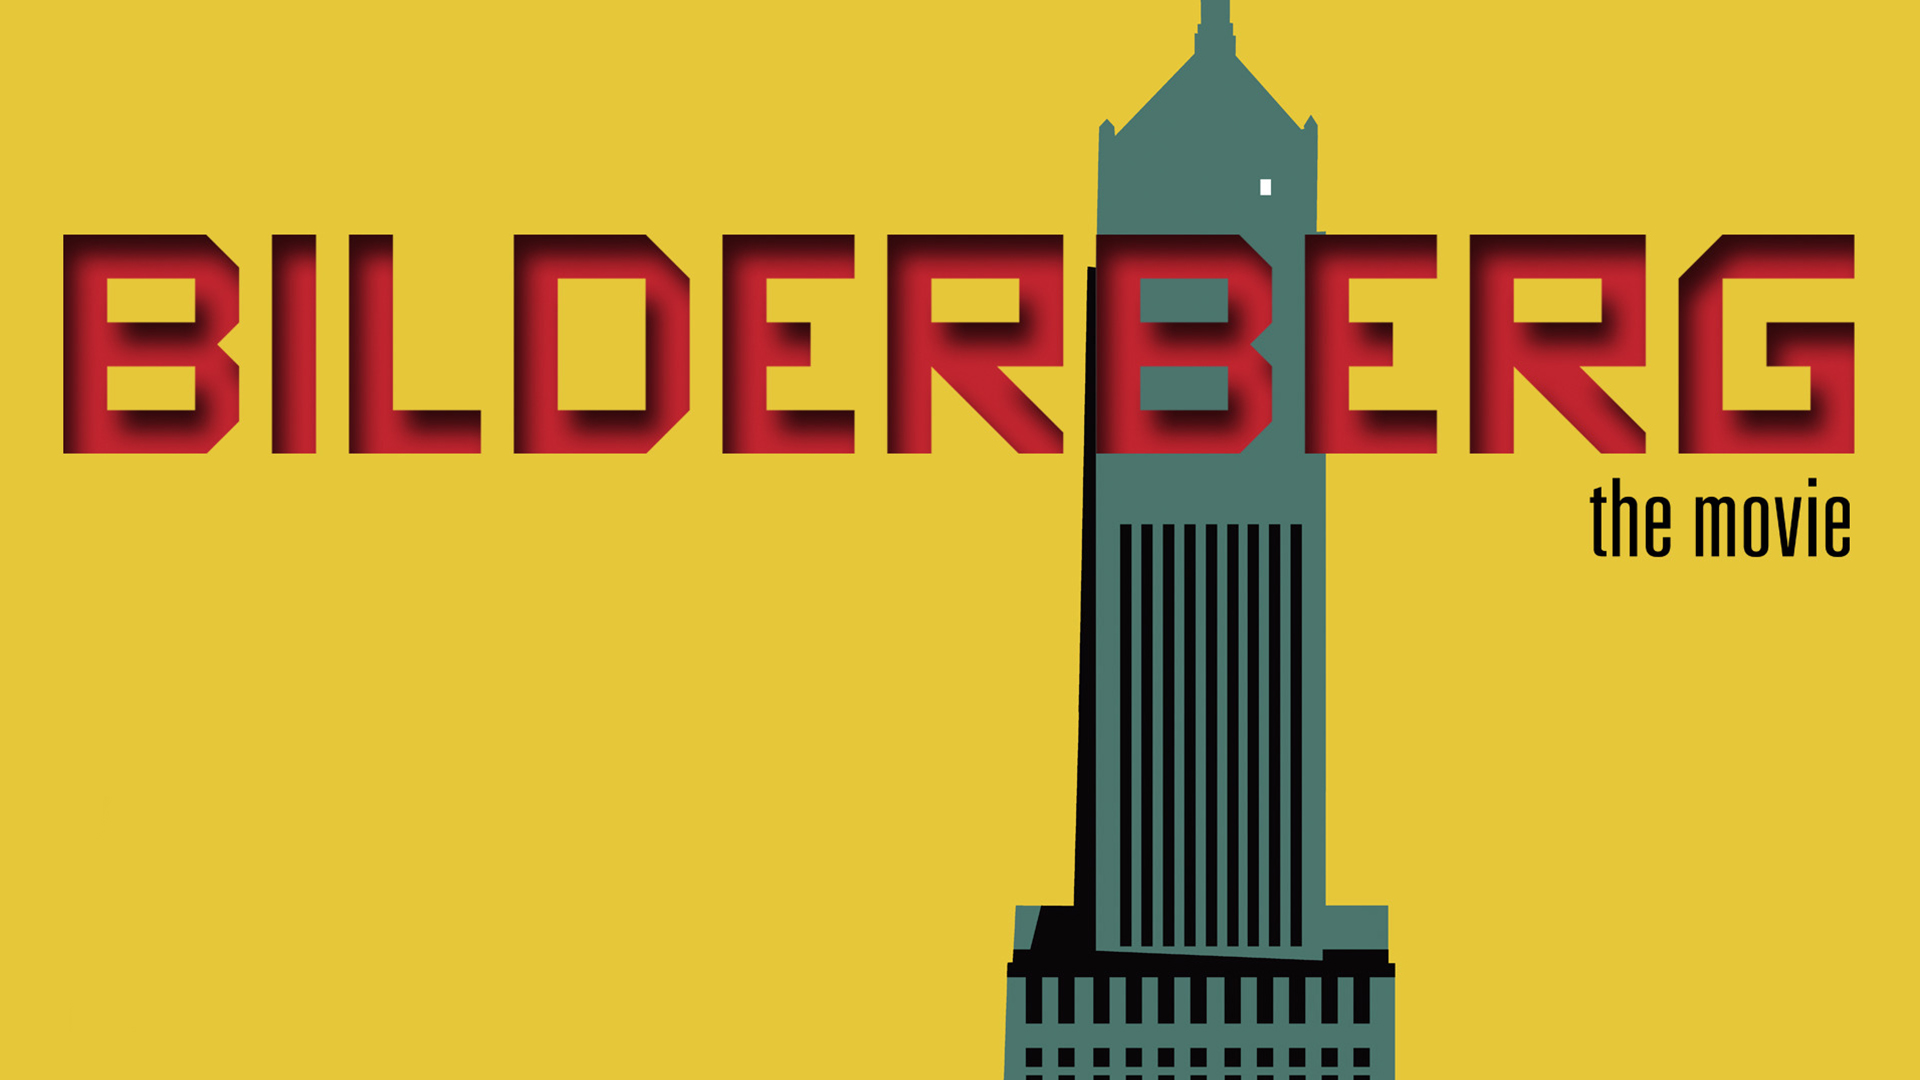 Bilderberg: The Movie